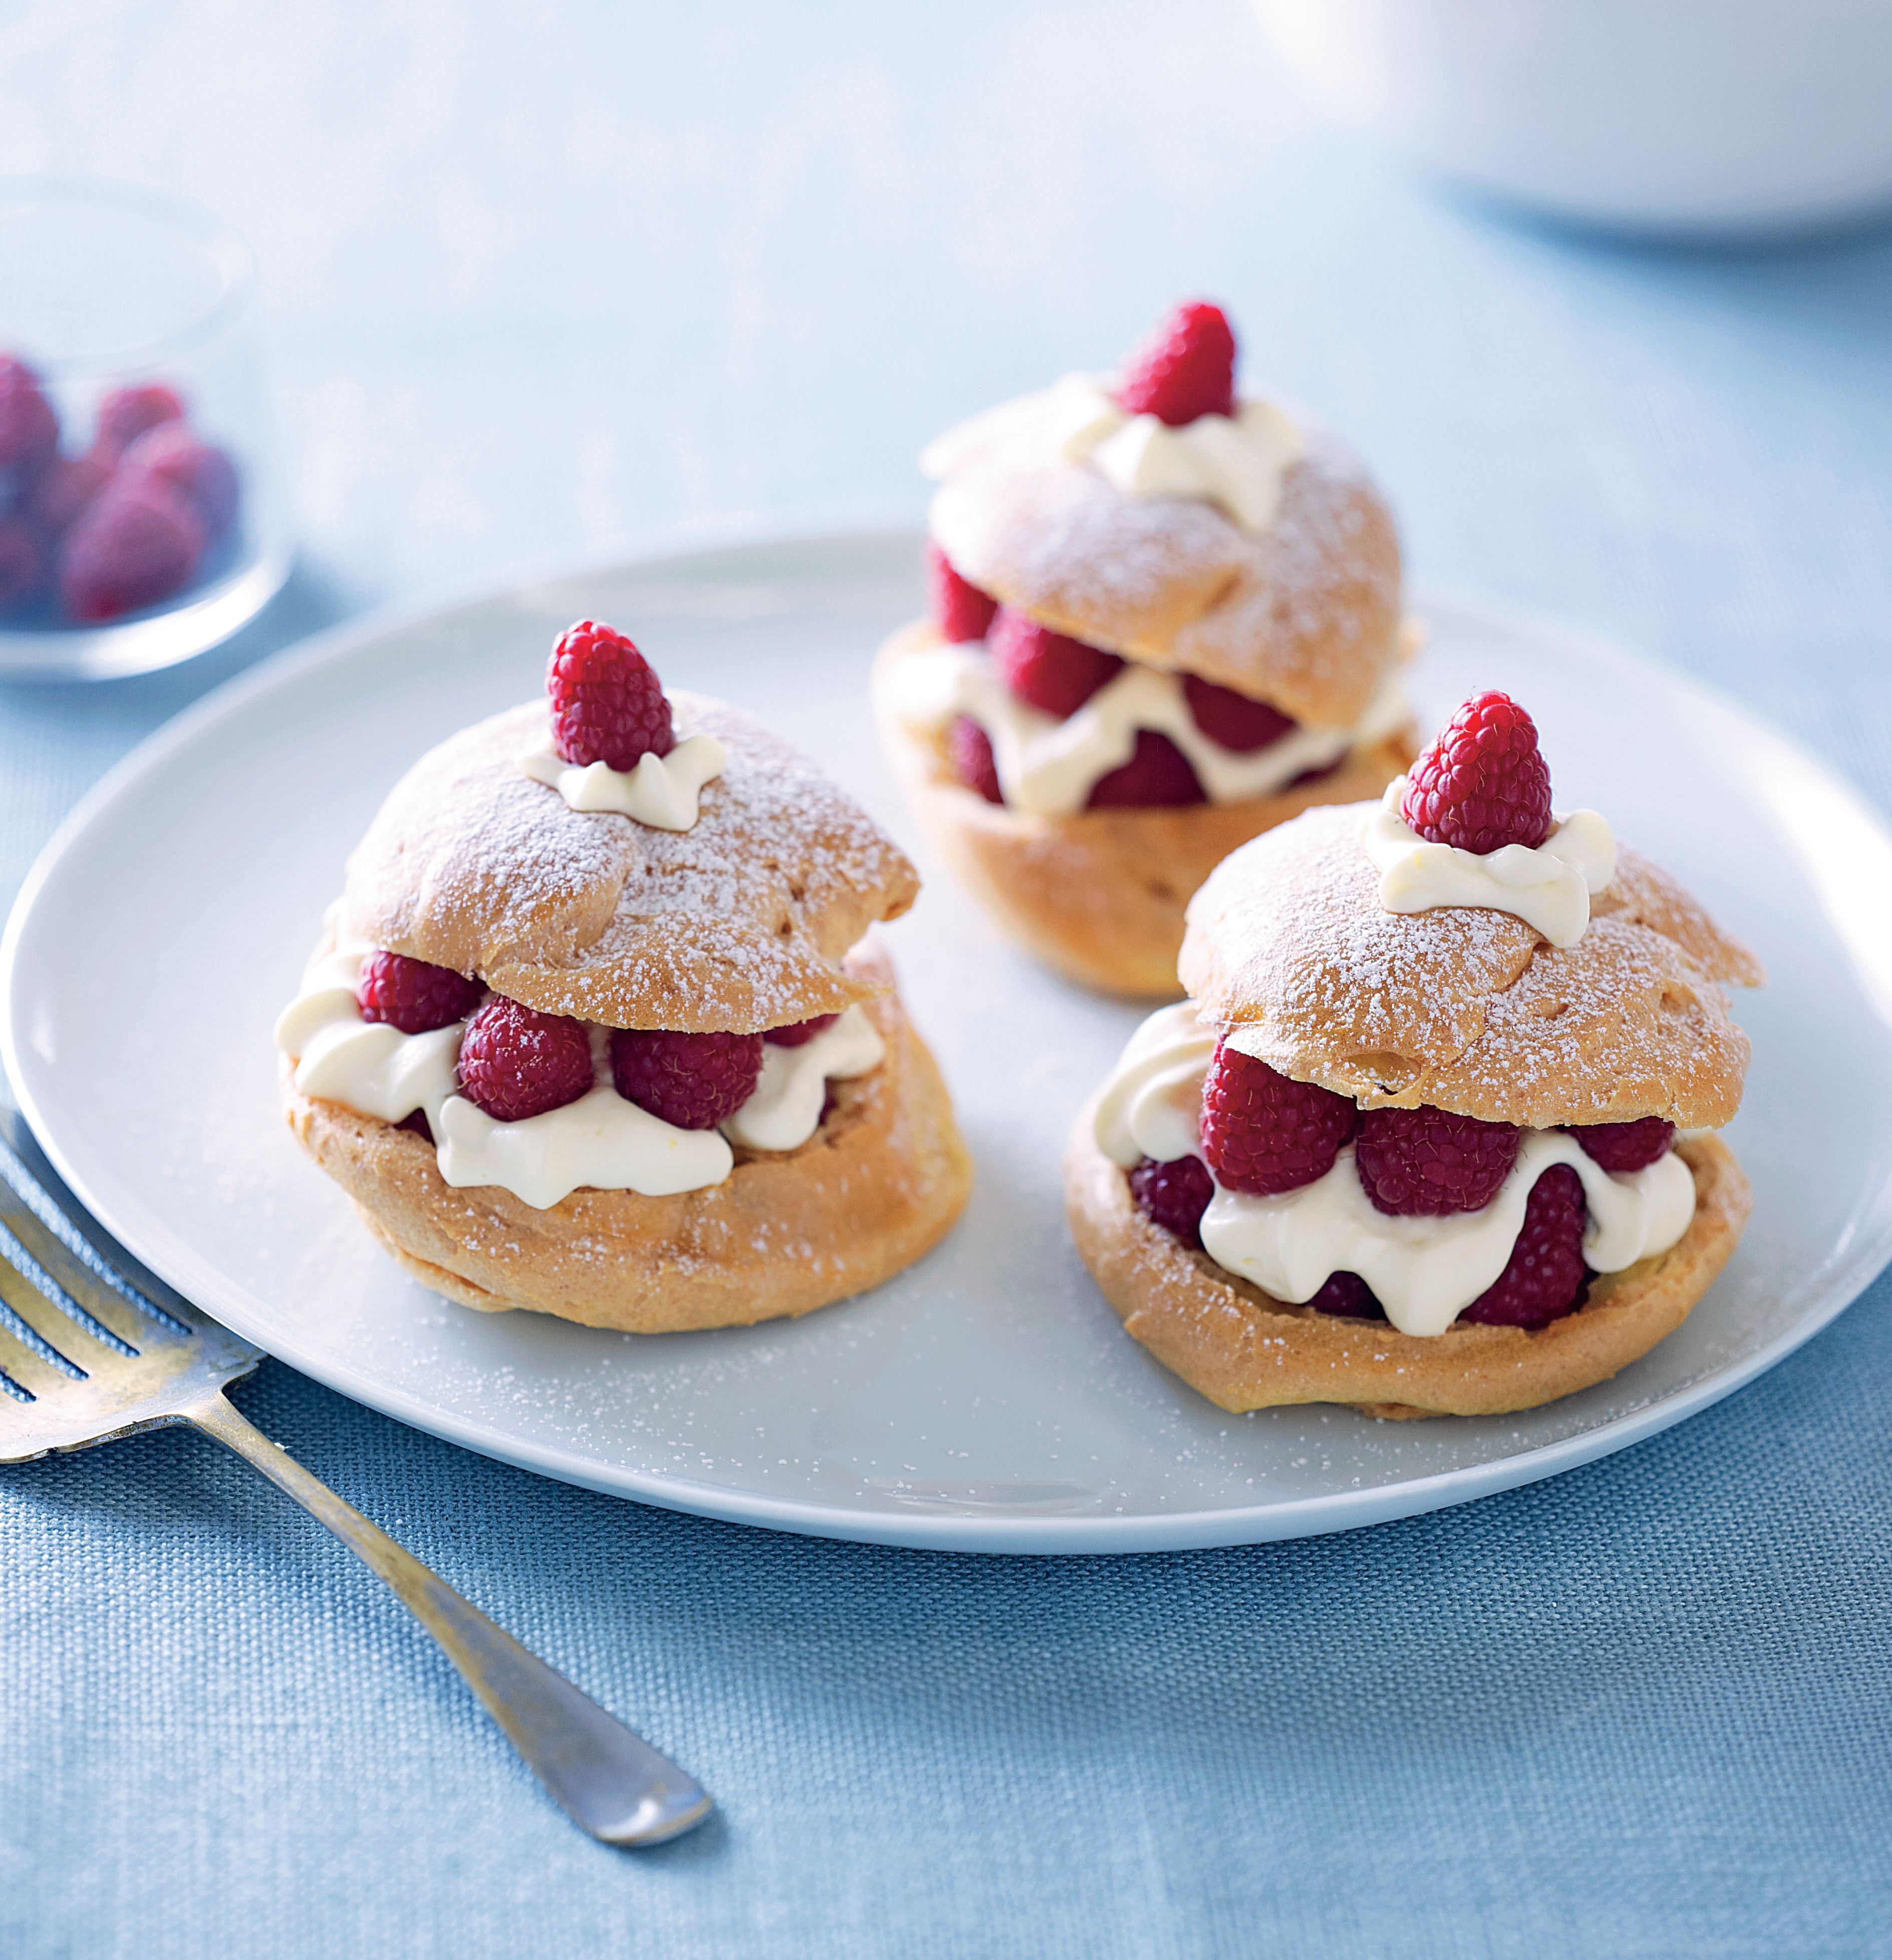 Raspberry choux puffs